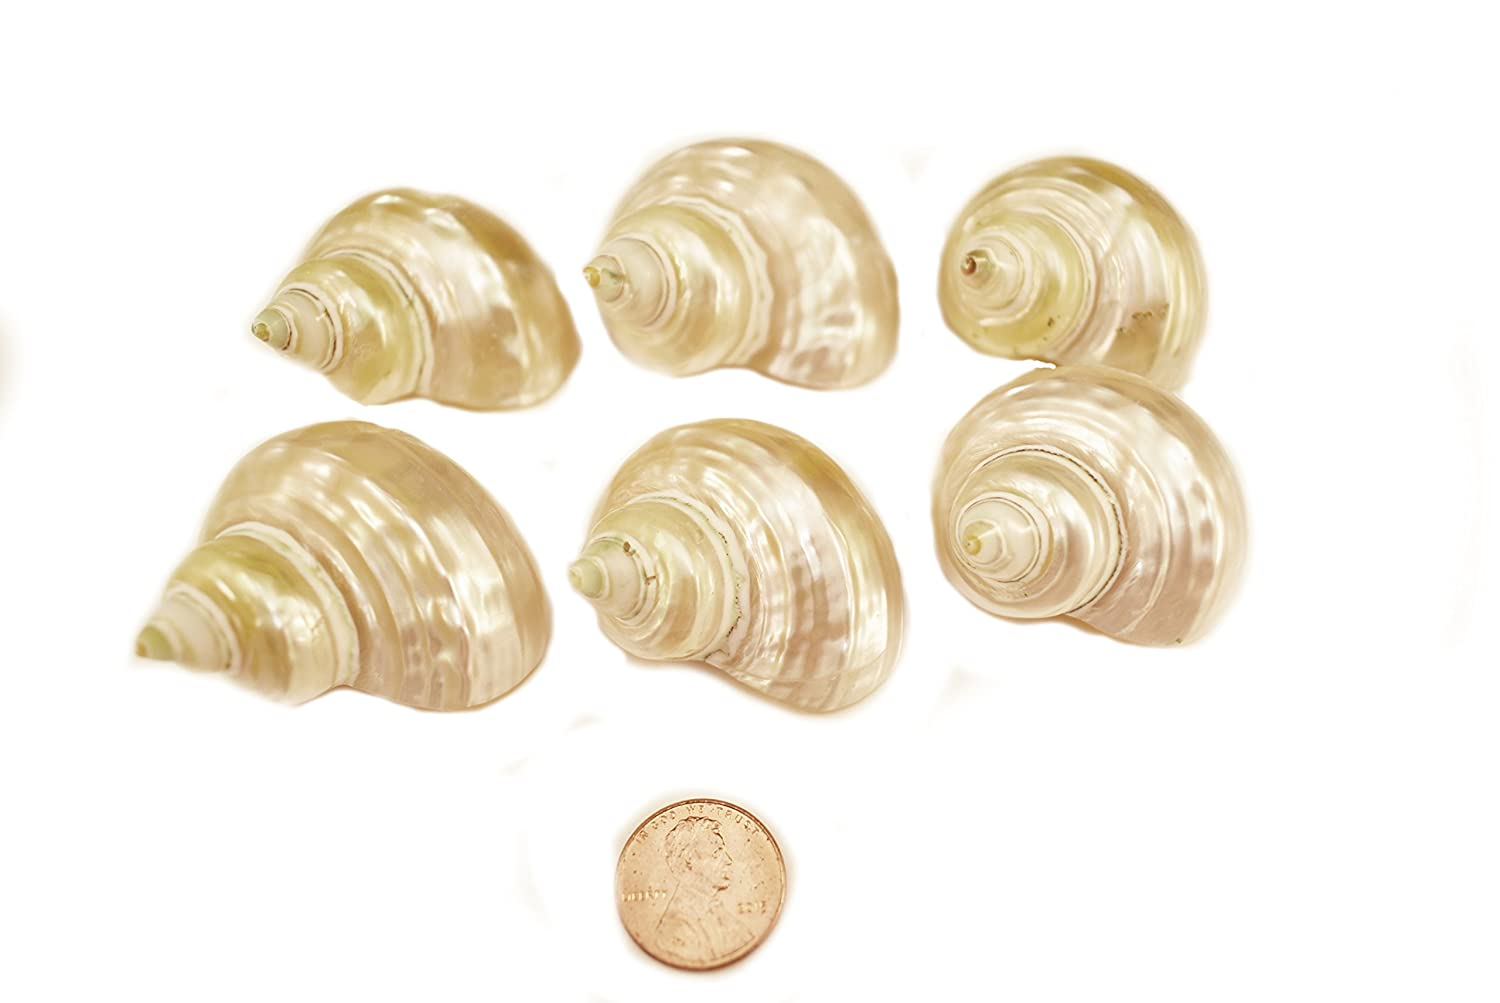 Set of 6 Polished Gold Turbo Shells 1 1/2 - 2 (5/8 - 7/8 opening) Crafts Hermit Crabs Florida Shells and Gifts Inc.